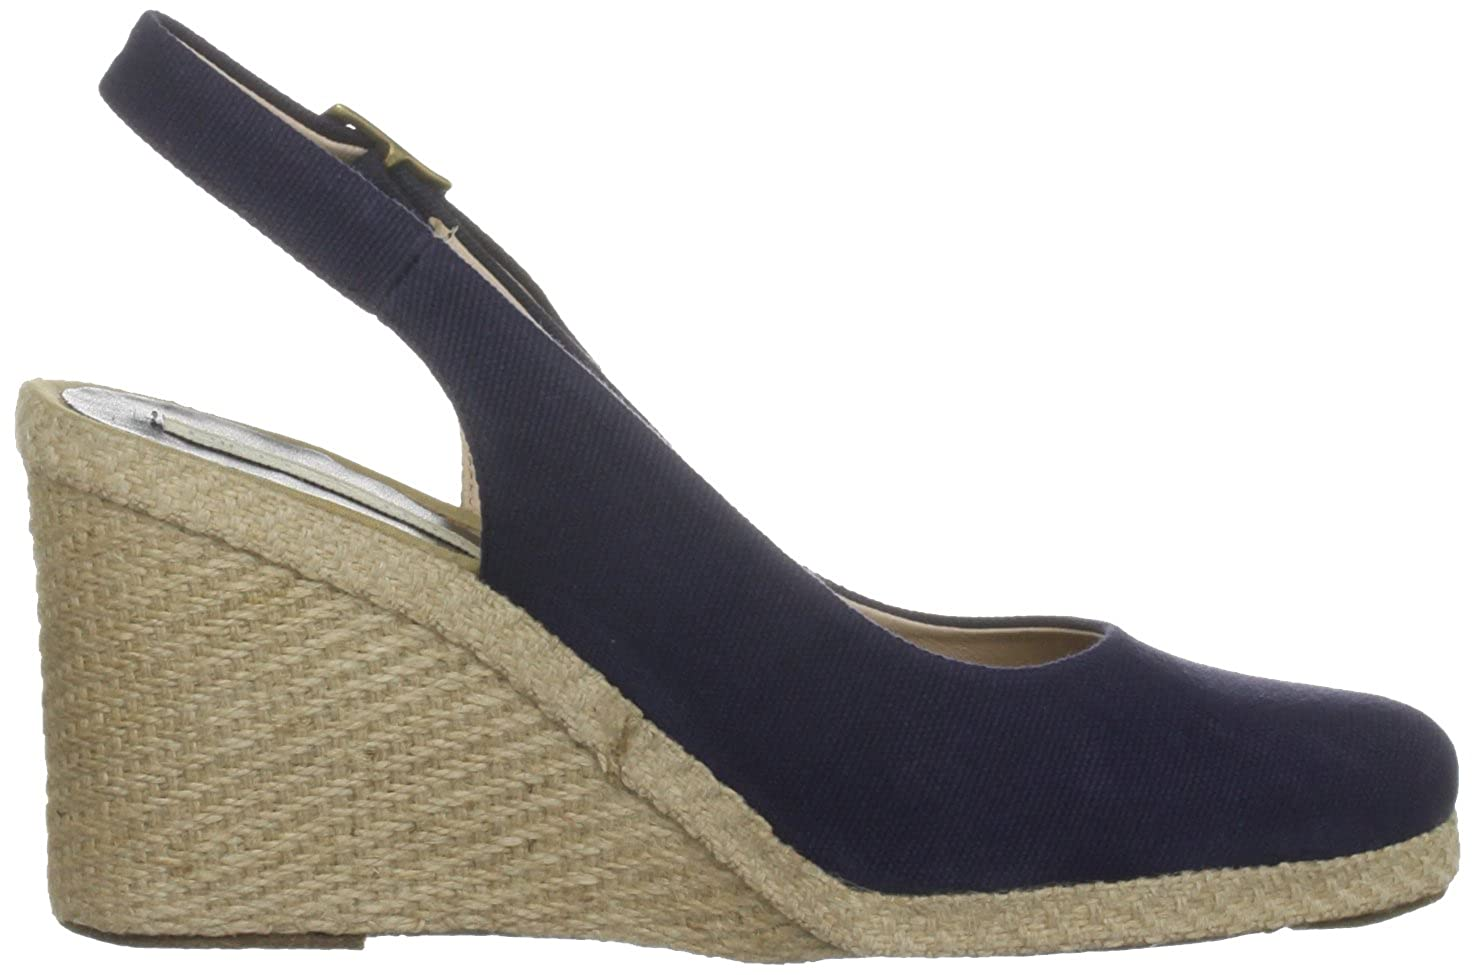 b4778e8a3 Pied A Terre Women's Imperia Navy Wedges 0433505900003040 3 UK:  Amazon.co.uk: Shoes & Bags